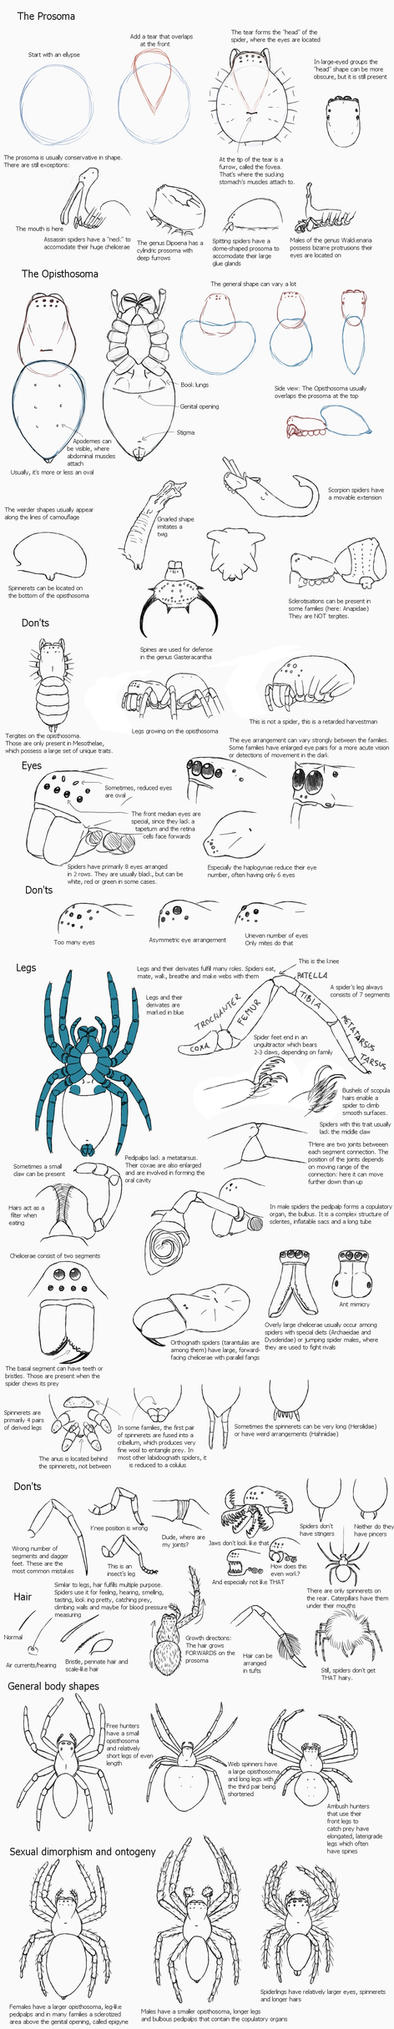 A guide to spiders by Ramul